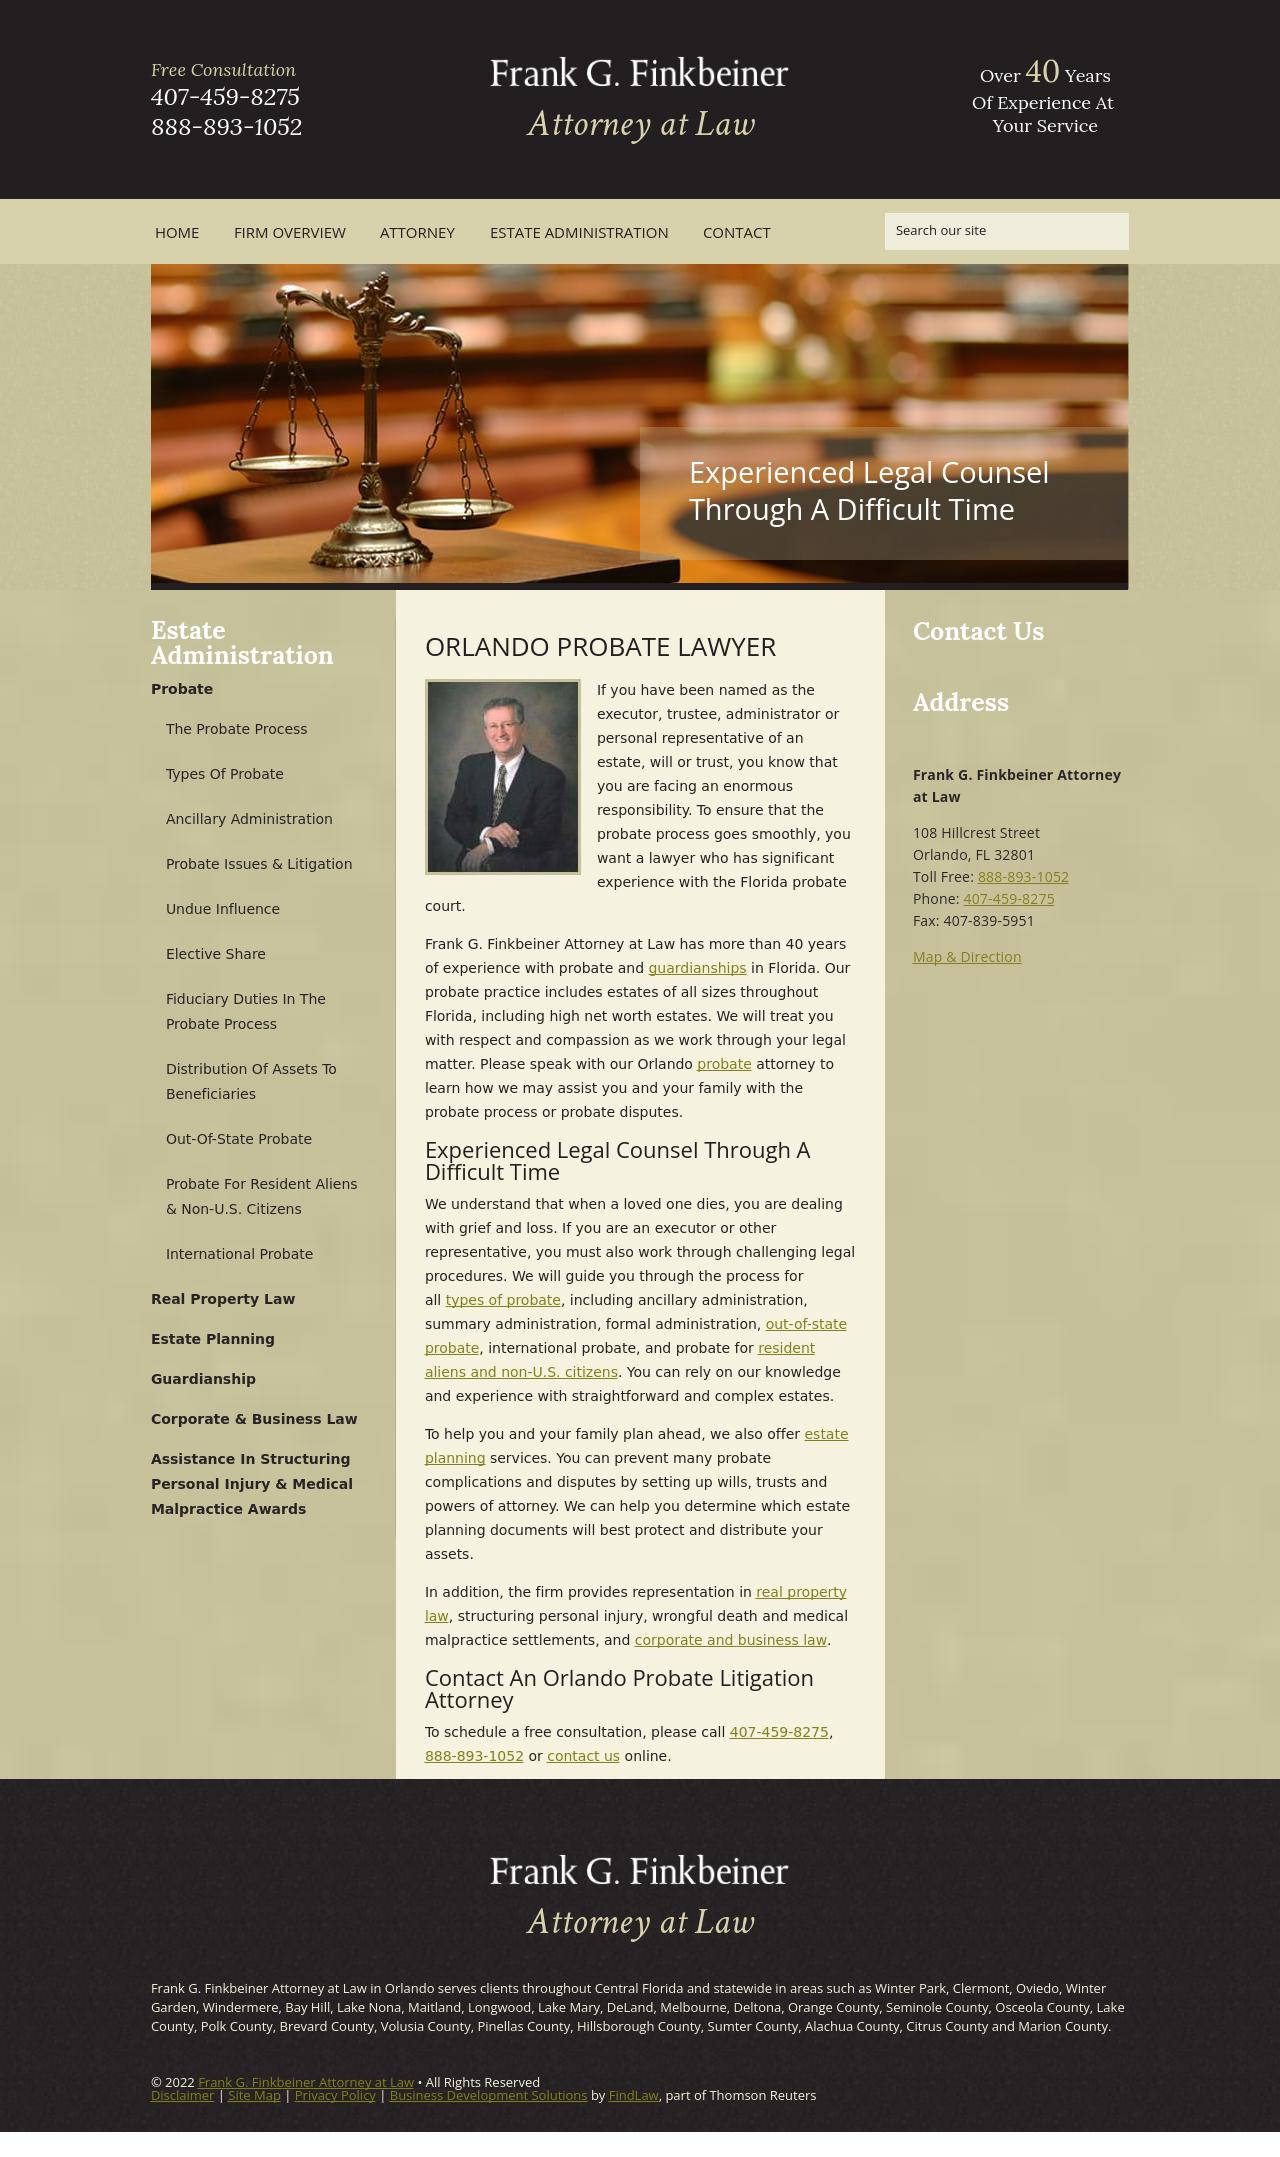 Frank G. Finkbeiner Attorney at Law - Orlando FL Lawyers